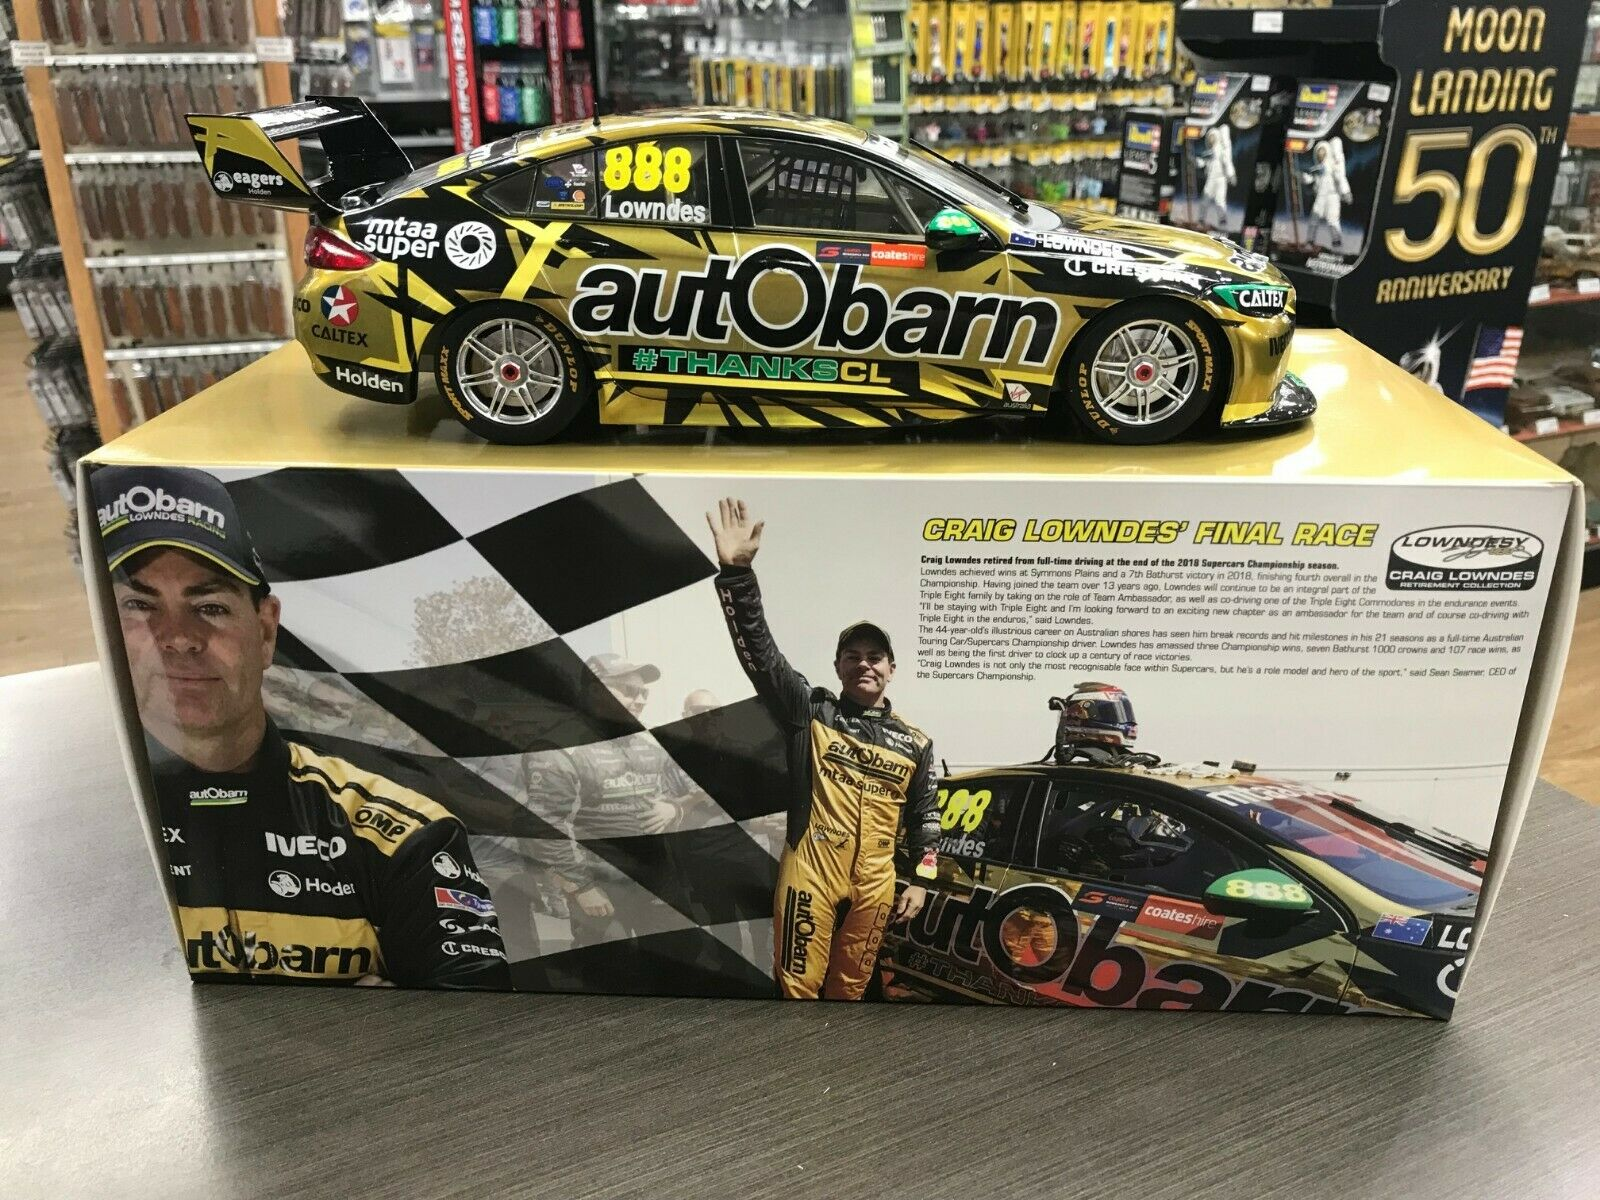 2018 CRAIG LOWNDES FINAL RACE Gold NEWCASTLE 500 HOLDEN COMMODORE 1 18 MODEL CAR